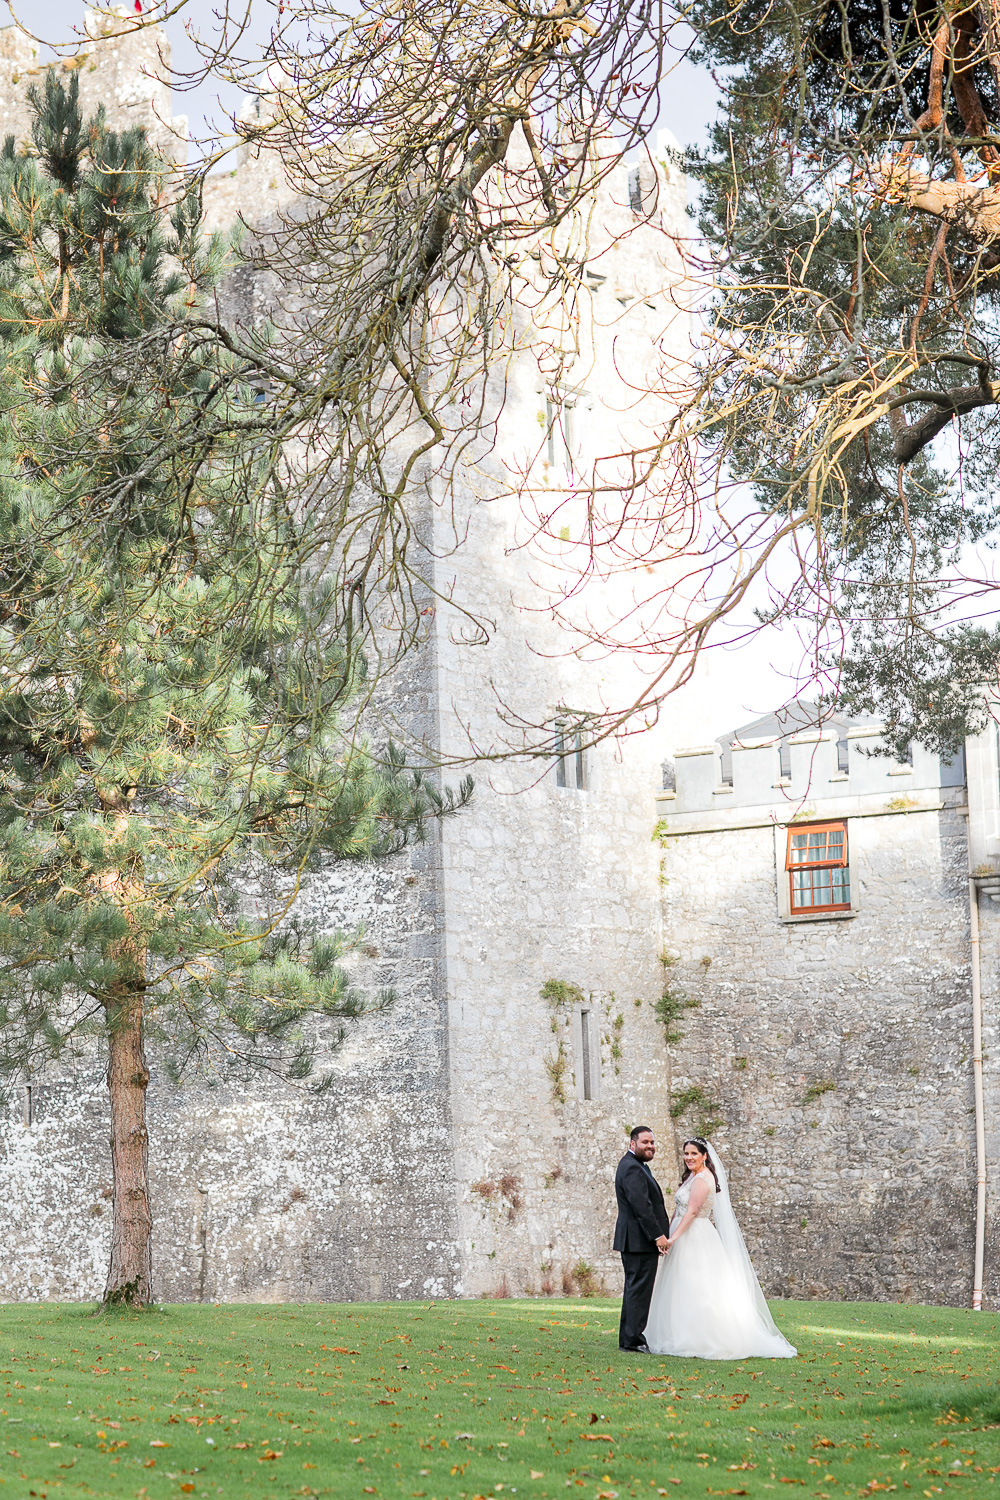 blackwater castle in the background for bride and groom photographs